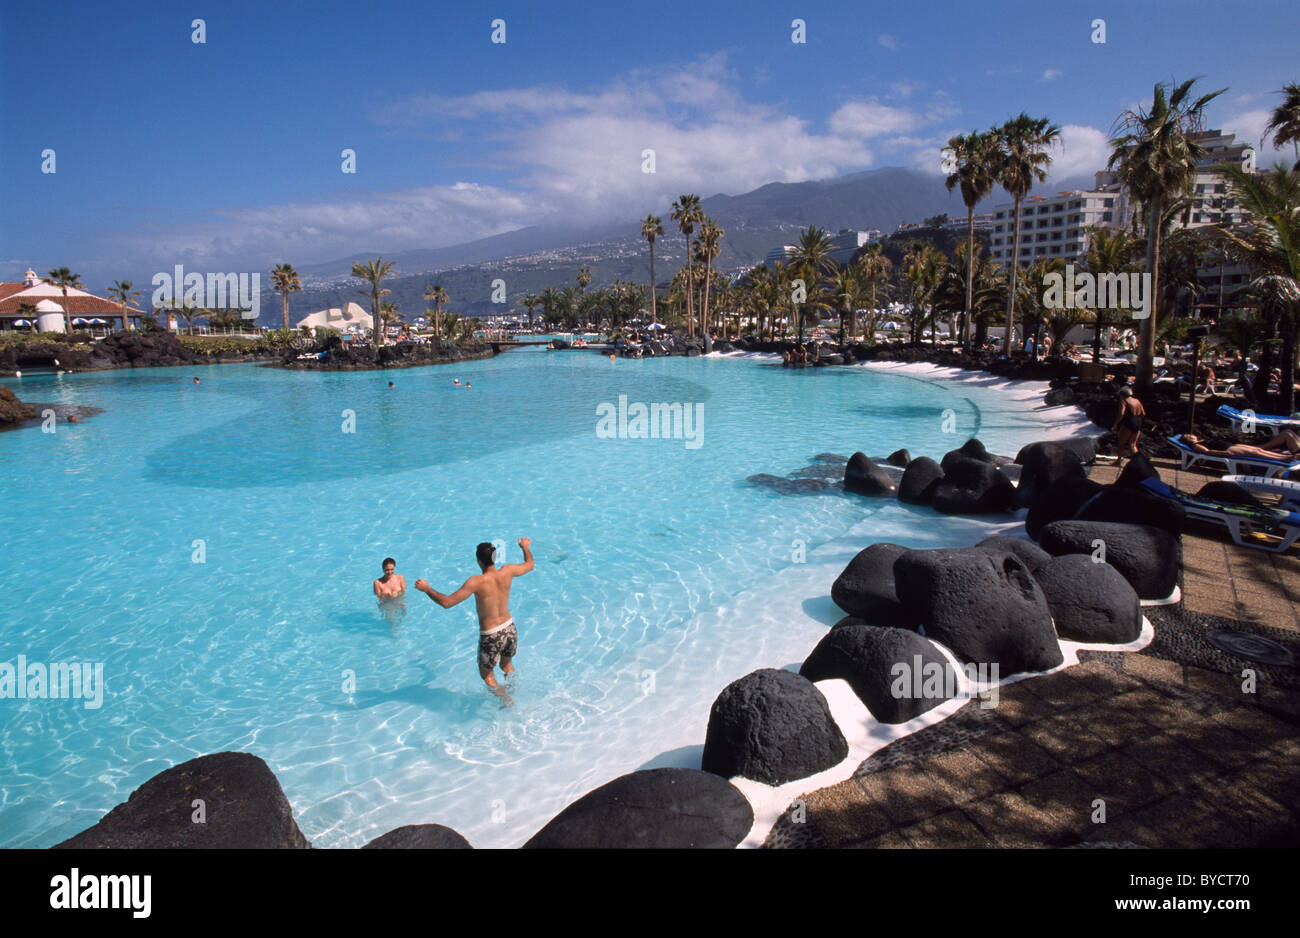 Pool Costa de Martianez in Puerto de la Cruz, built by Cesar Stock Photo, Roy...